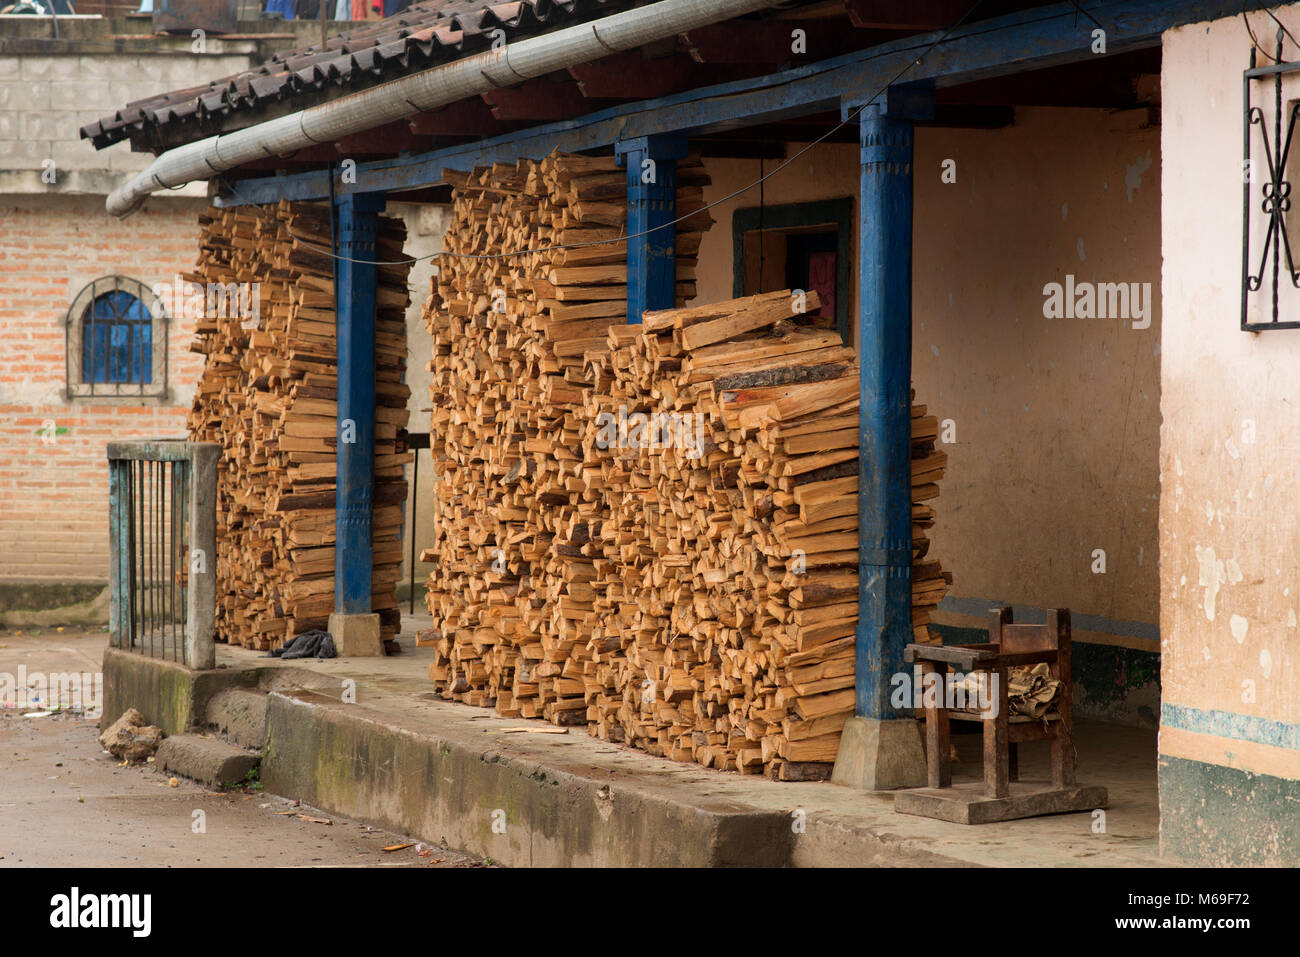 Firewood is piled high outside an Ixil house to heat it year round. San Gaspar Chajul, Ixil Triangle, Guatemala. - Stock Image